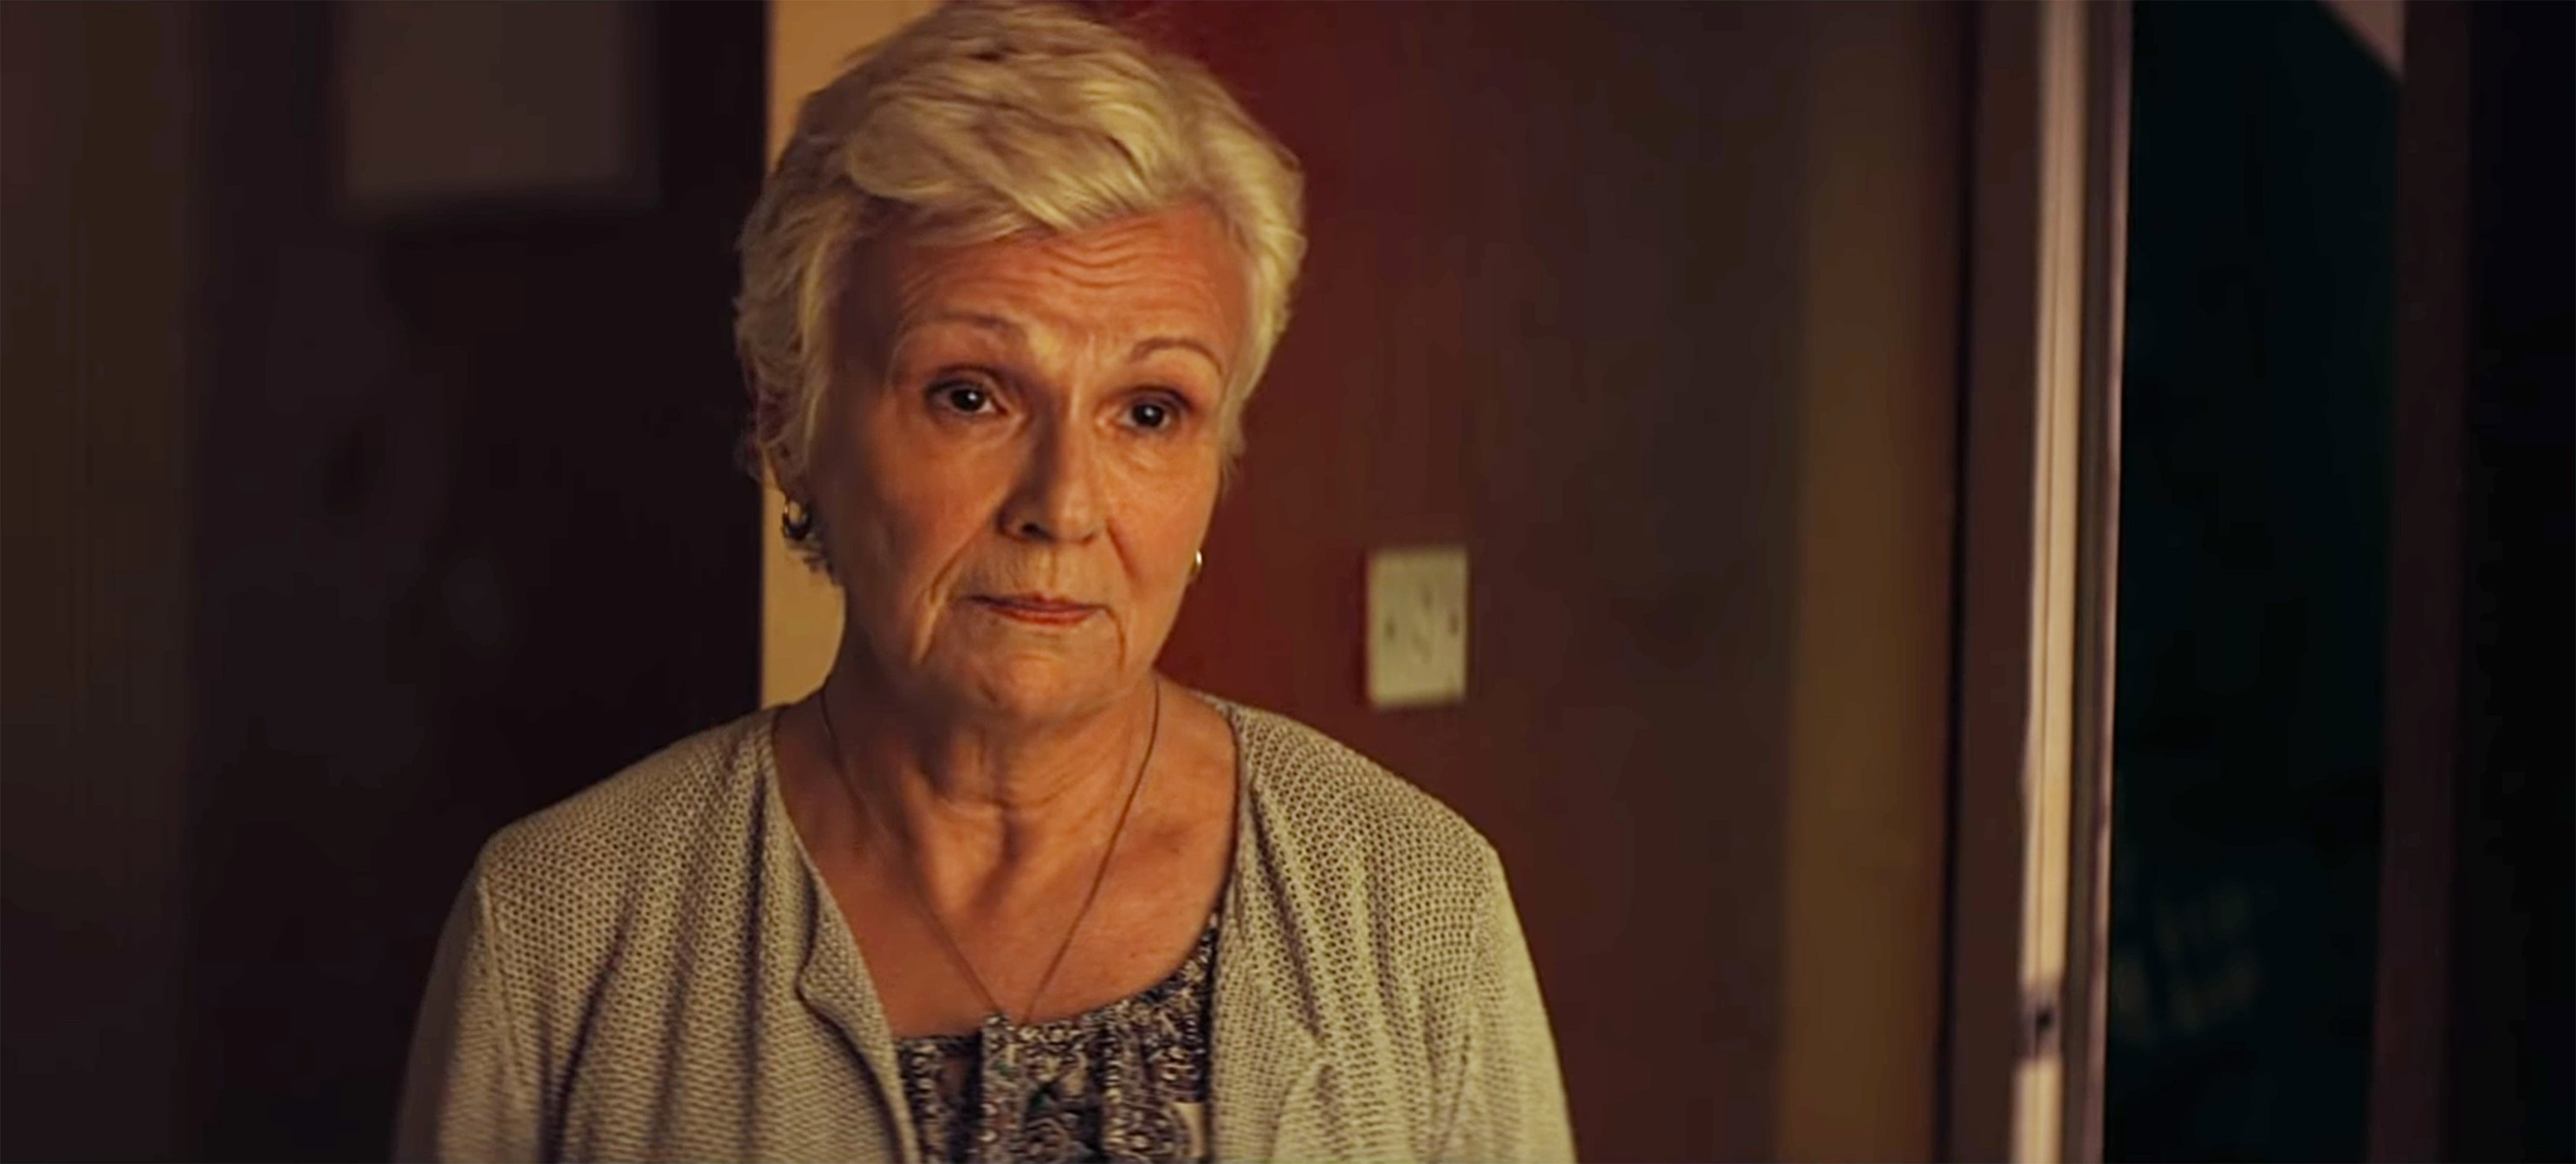 UK.  Julie Walters  in the ©Neon new movie: Wild Rose  (2019).  Plot: A musician from Glasgow dreams of becoming a Nashville star., Image: 421377398, License: Rights-managed, Restrictions: Supplied by Landmark Media. Editorial Only. Landmark Media is not the copyright owner of these Film or TV stills but provides a service only for recognised Media outlets., Model Release: no, Credit line: Supplied by LMK / Landmark / Profimedia